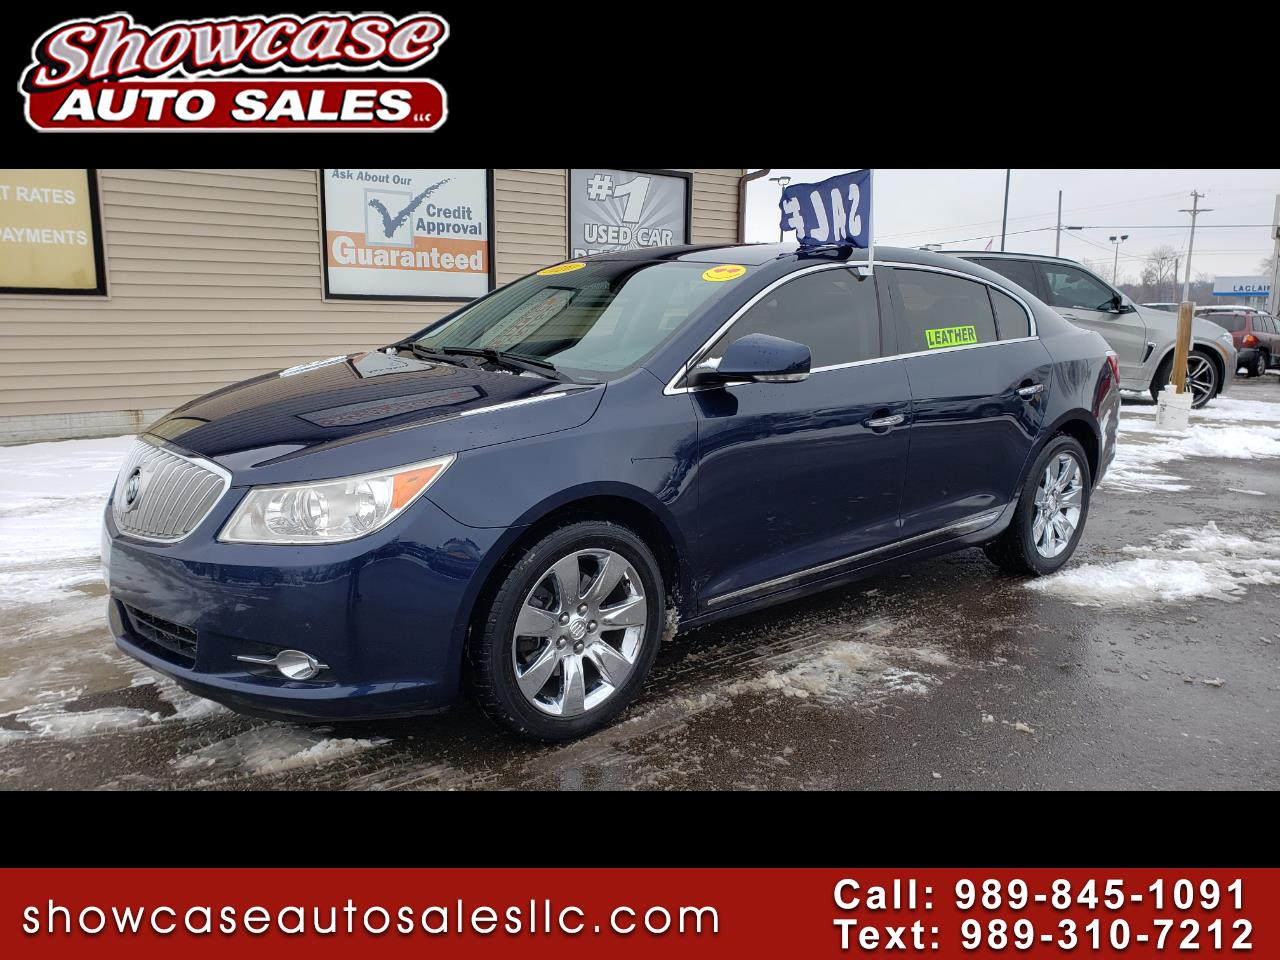 Buick LaCrosse 4dr Sdn CXL 3.0L FWD 2010